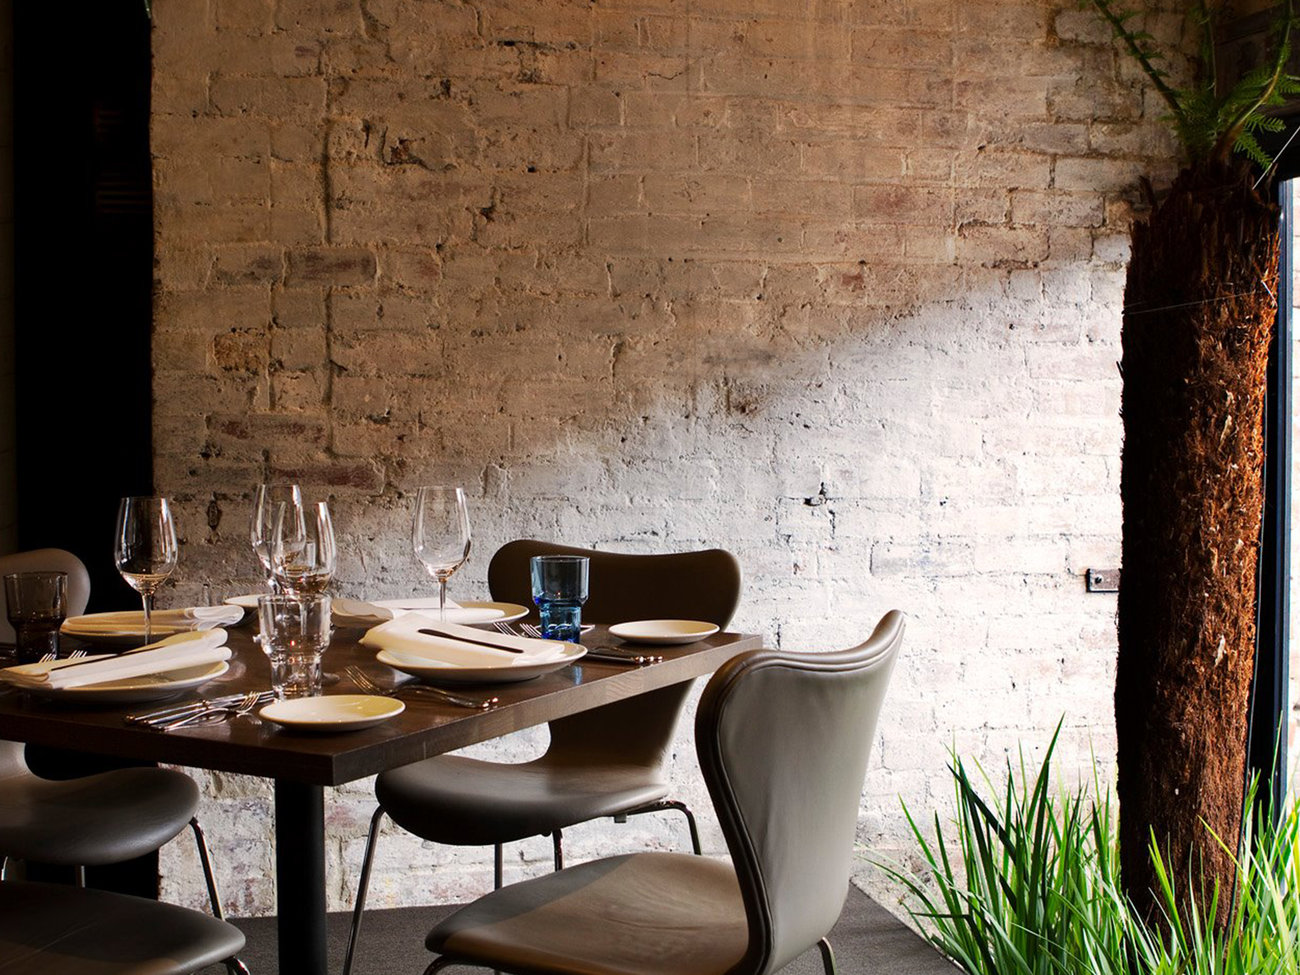 Cutler & Co Restaurant in Melbourne